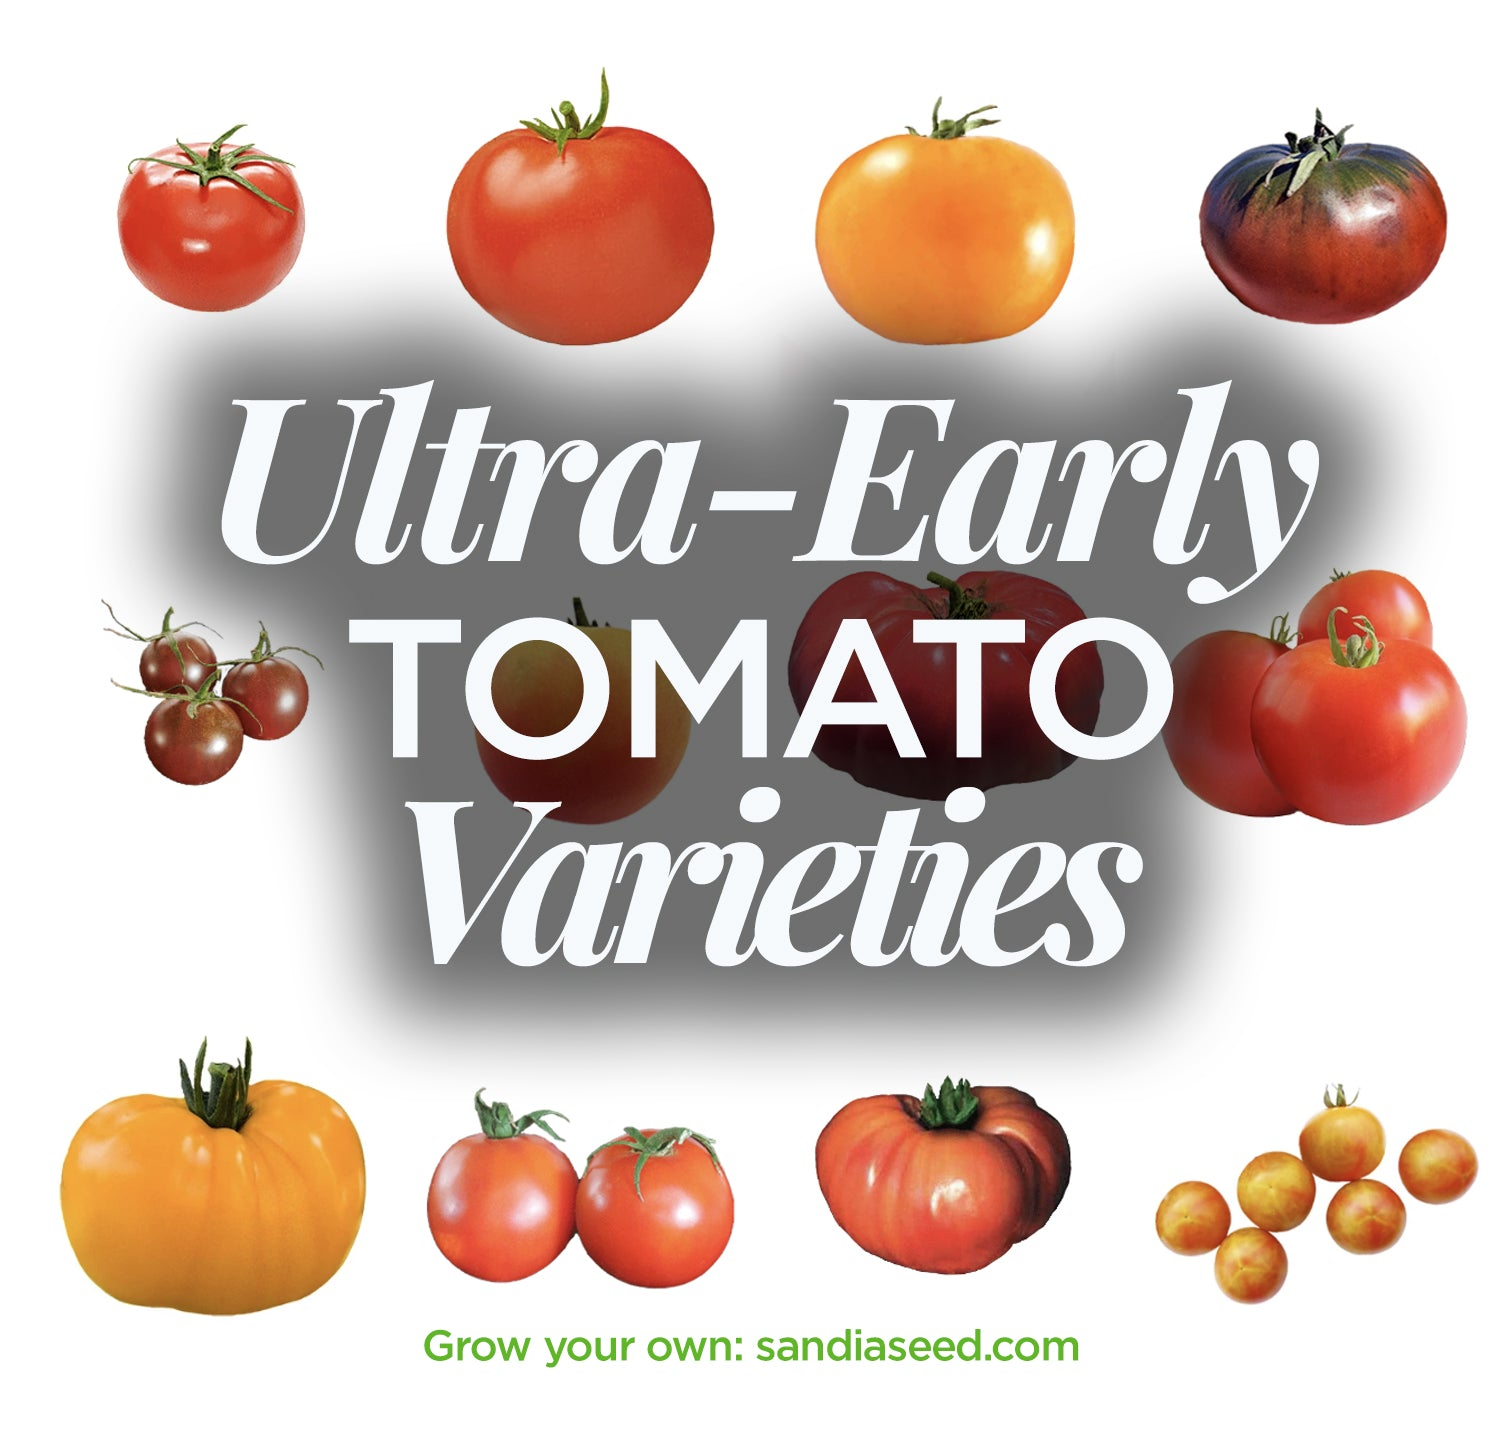 Ultra-early Tomato Varieties